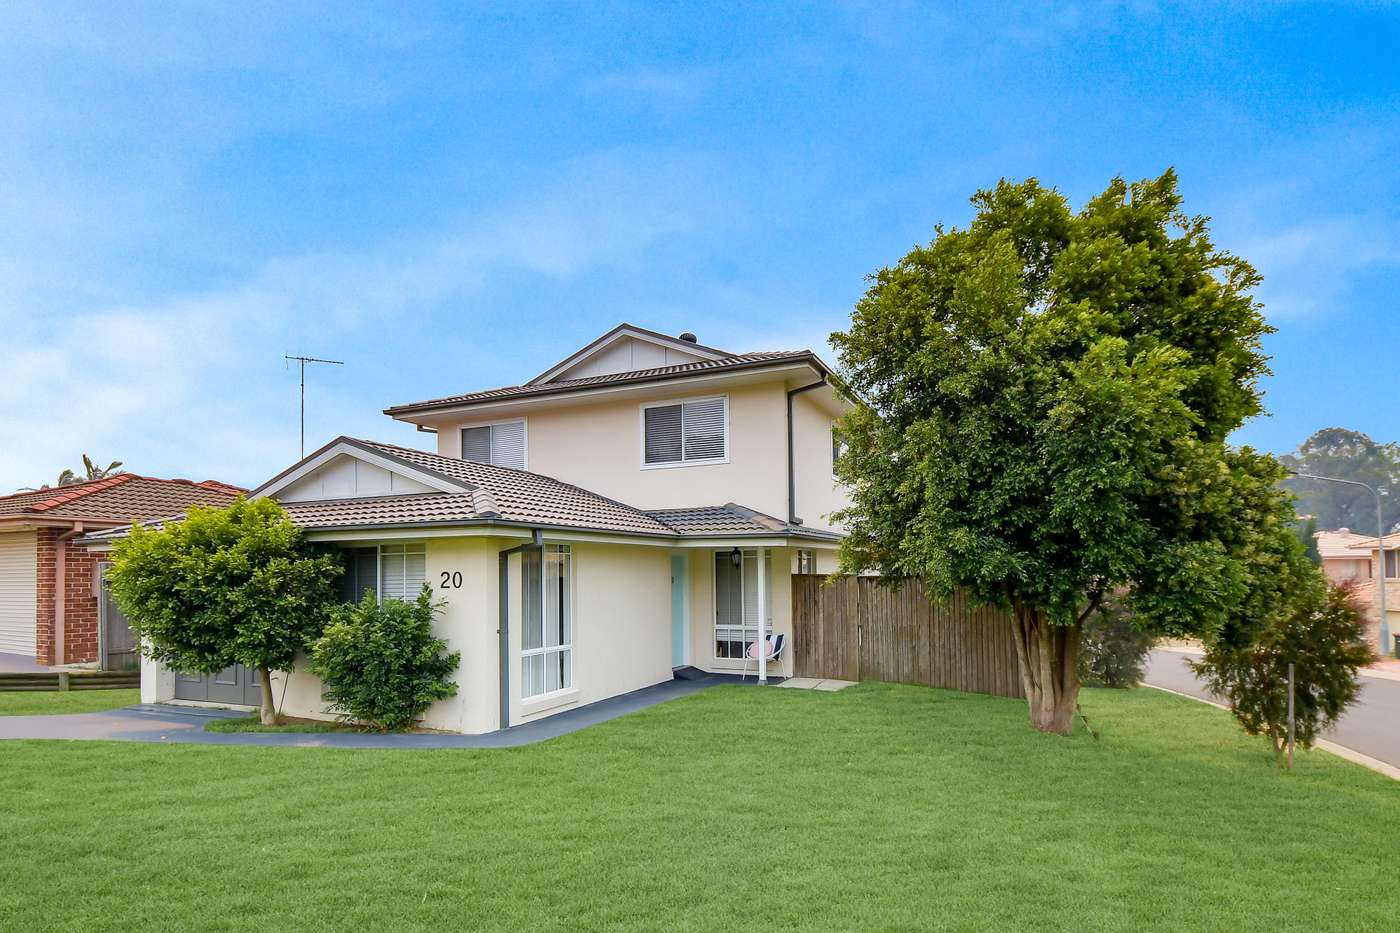 Main view of Homely house listing, 20 Freeman Circuit, Ingleburn, NSW 2565